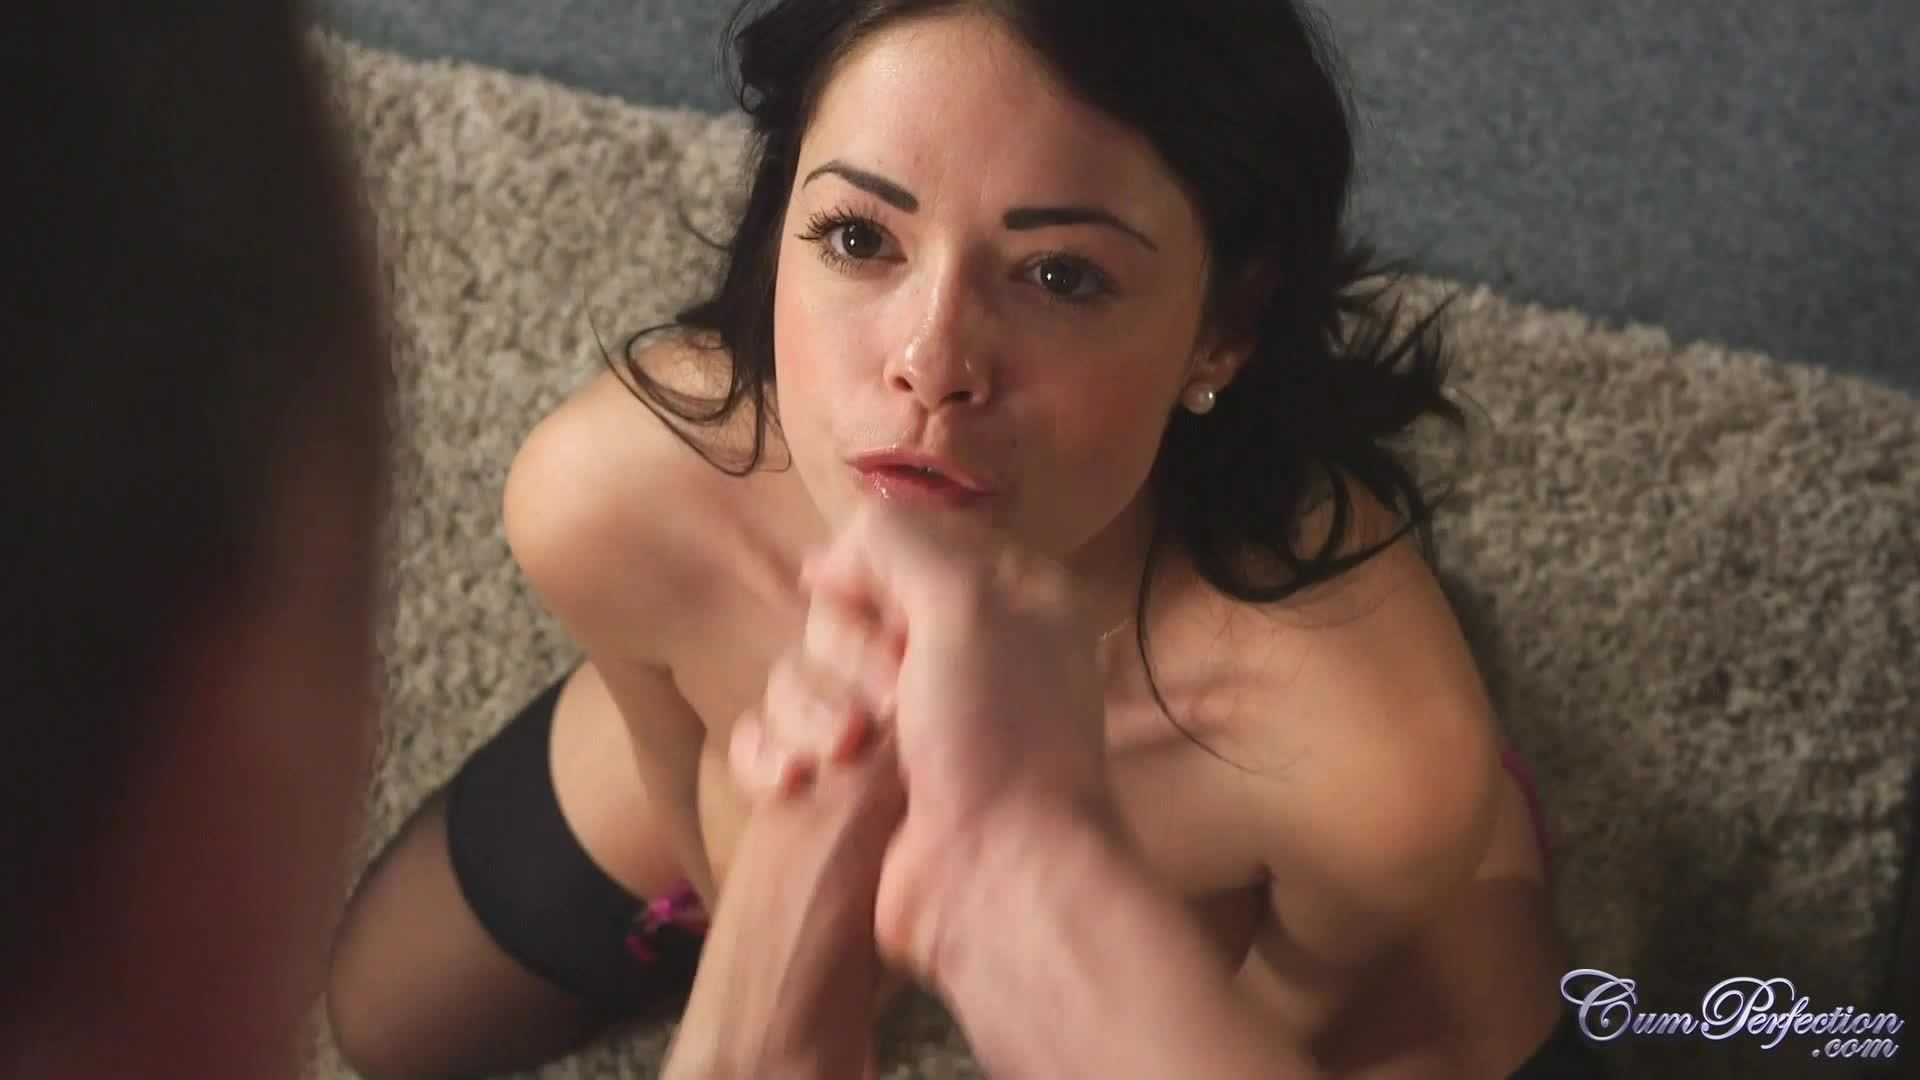 bangbros audition free videos watch download and enjoy